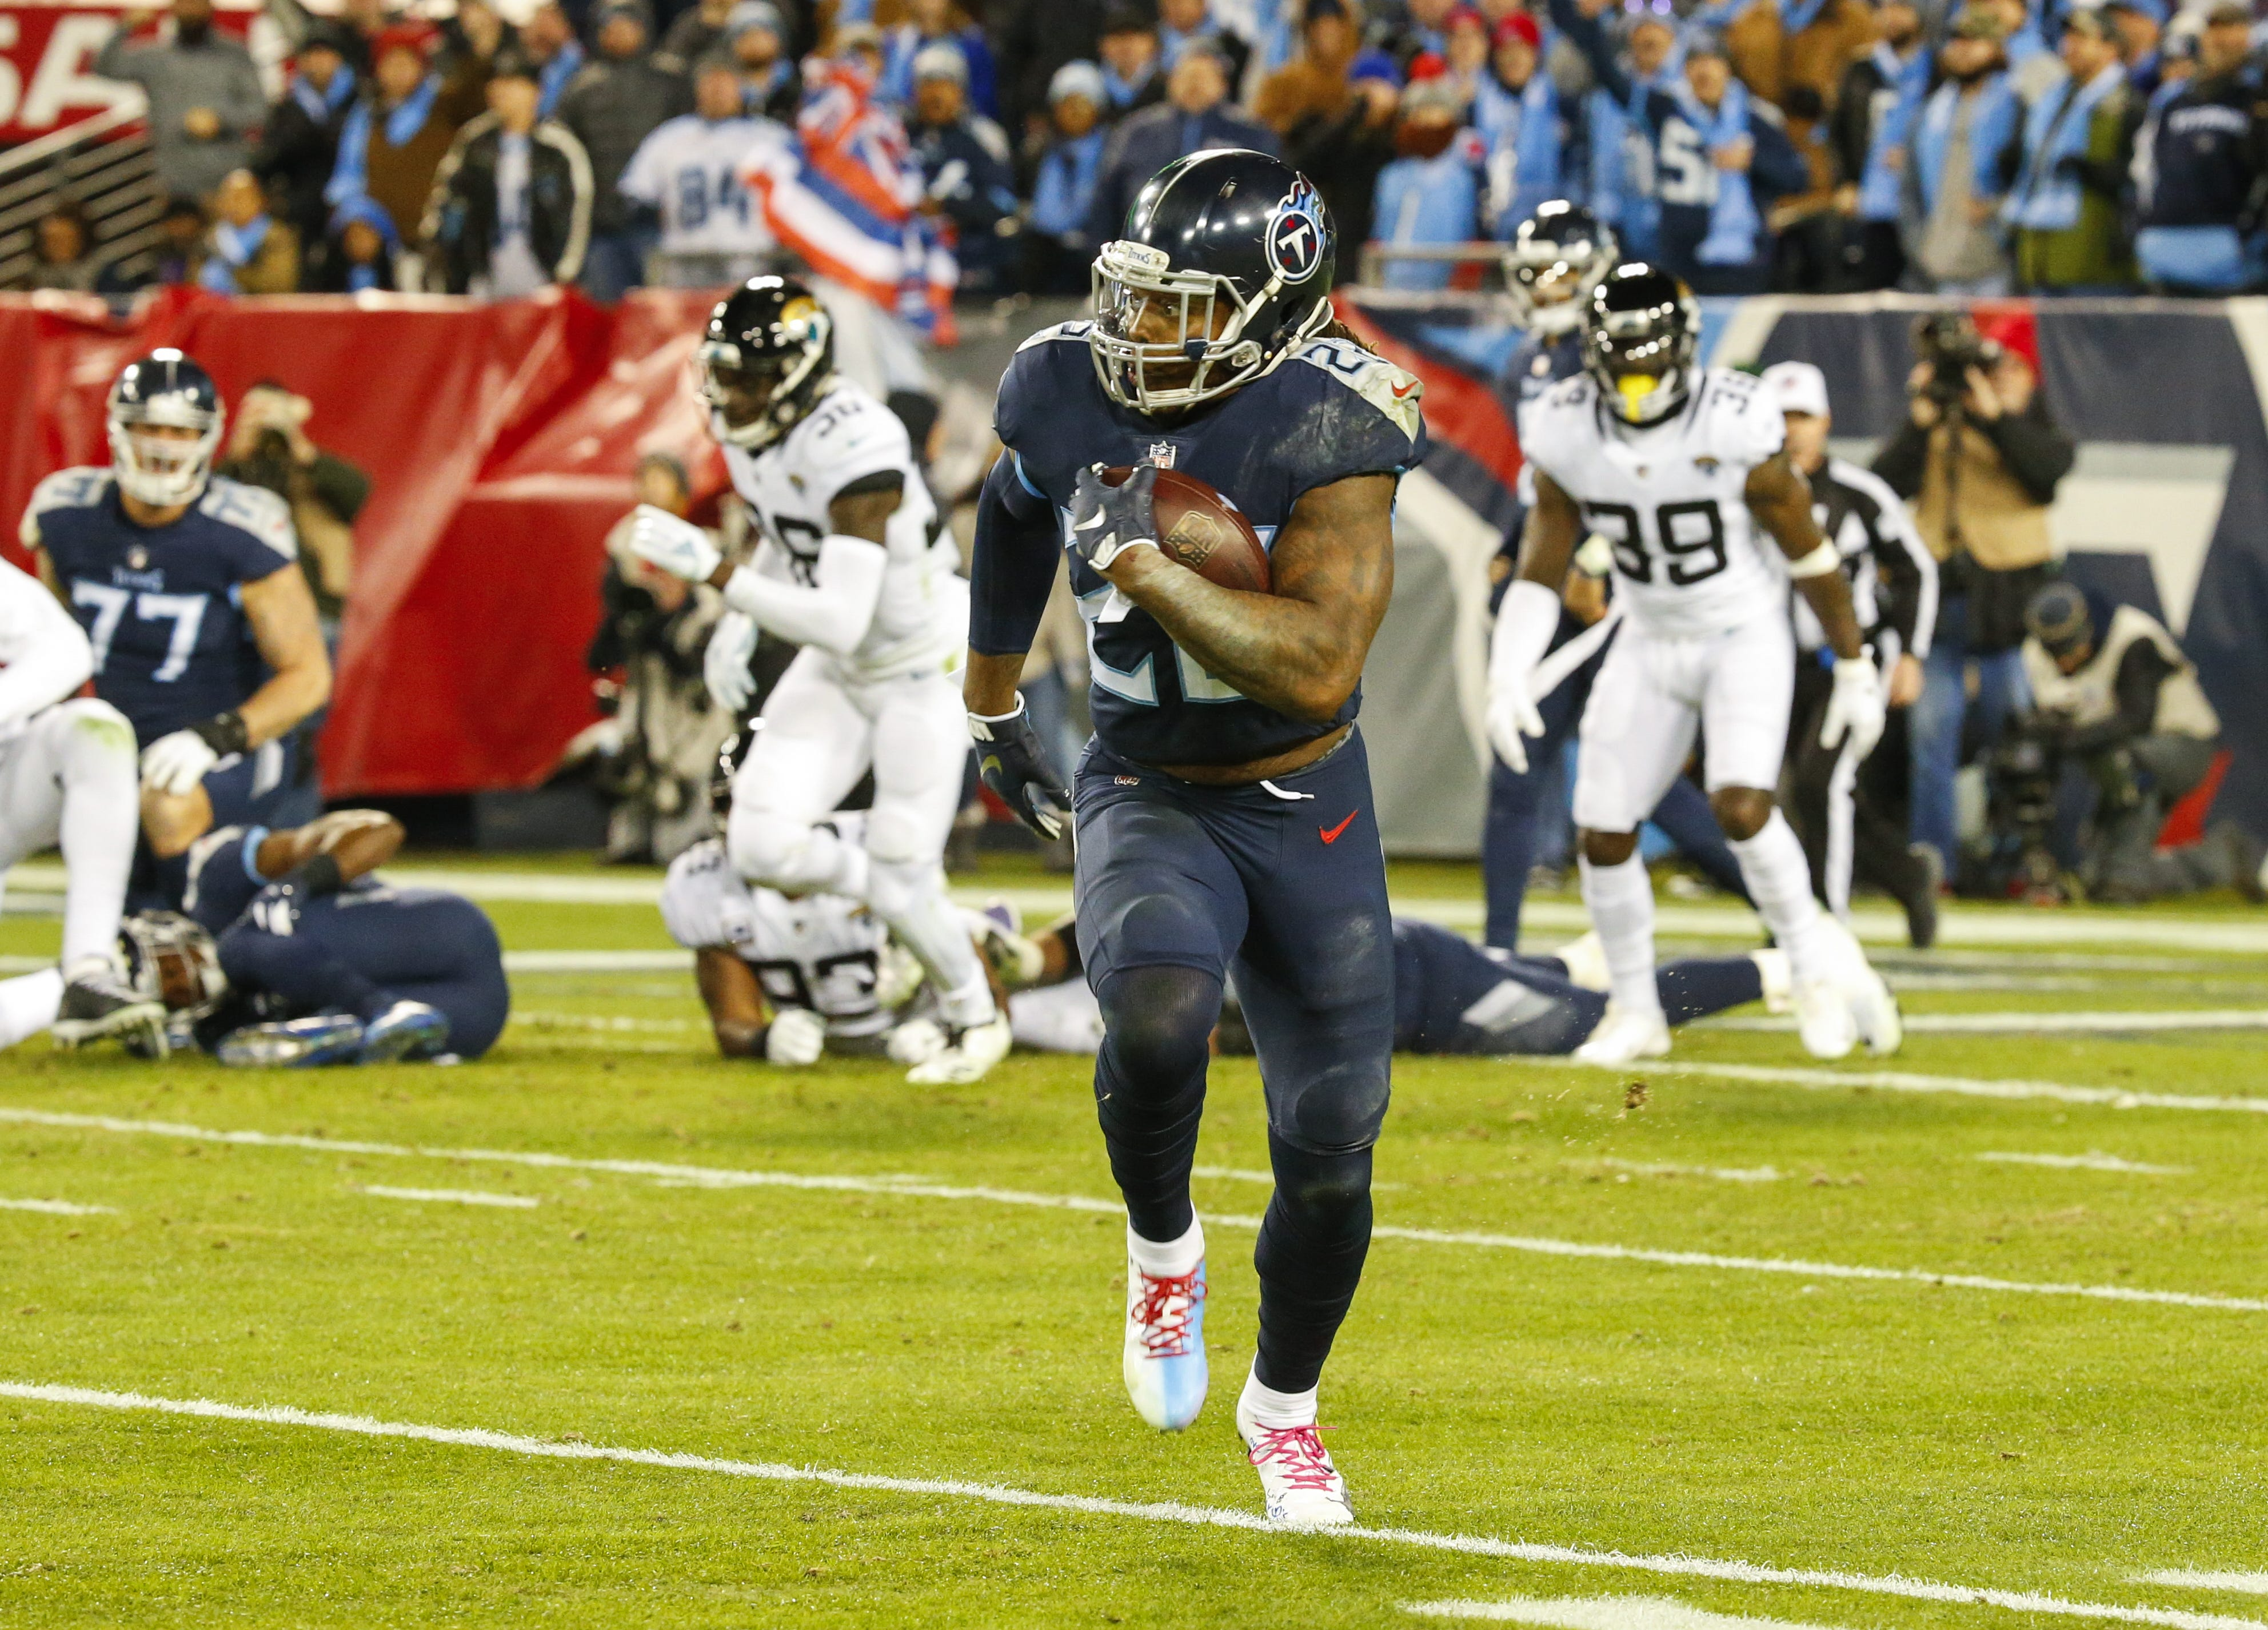 Derrick Henry ties Tony Dorsett's NFL record with 99-yard TD run vs. Jaguars